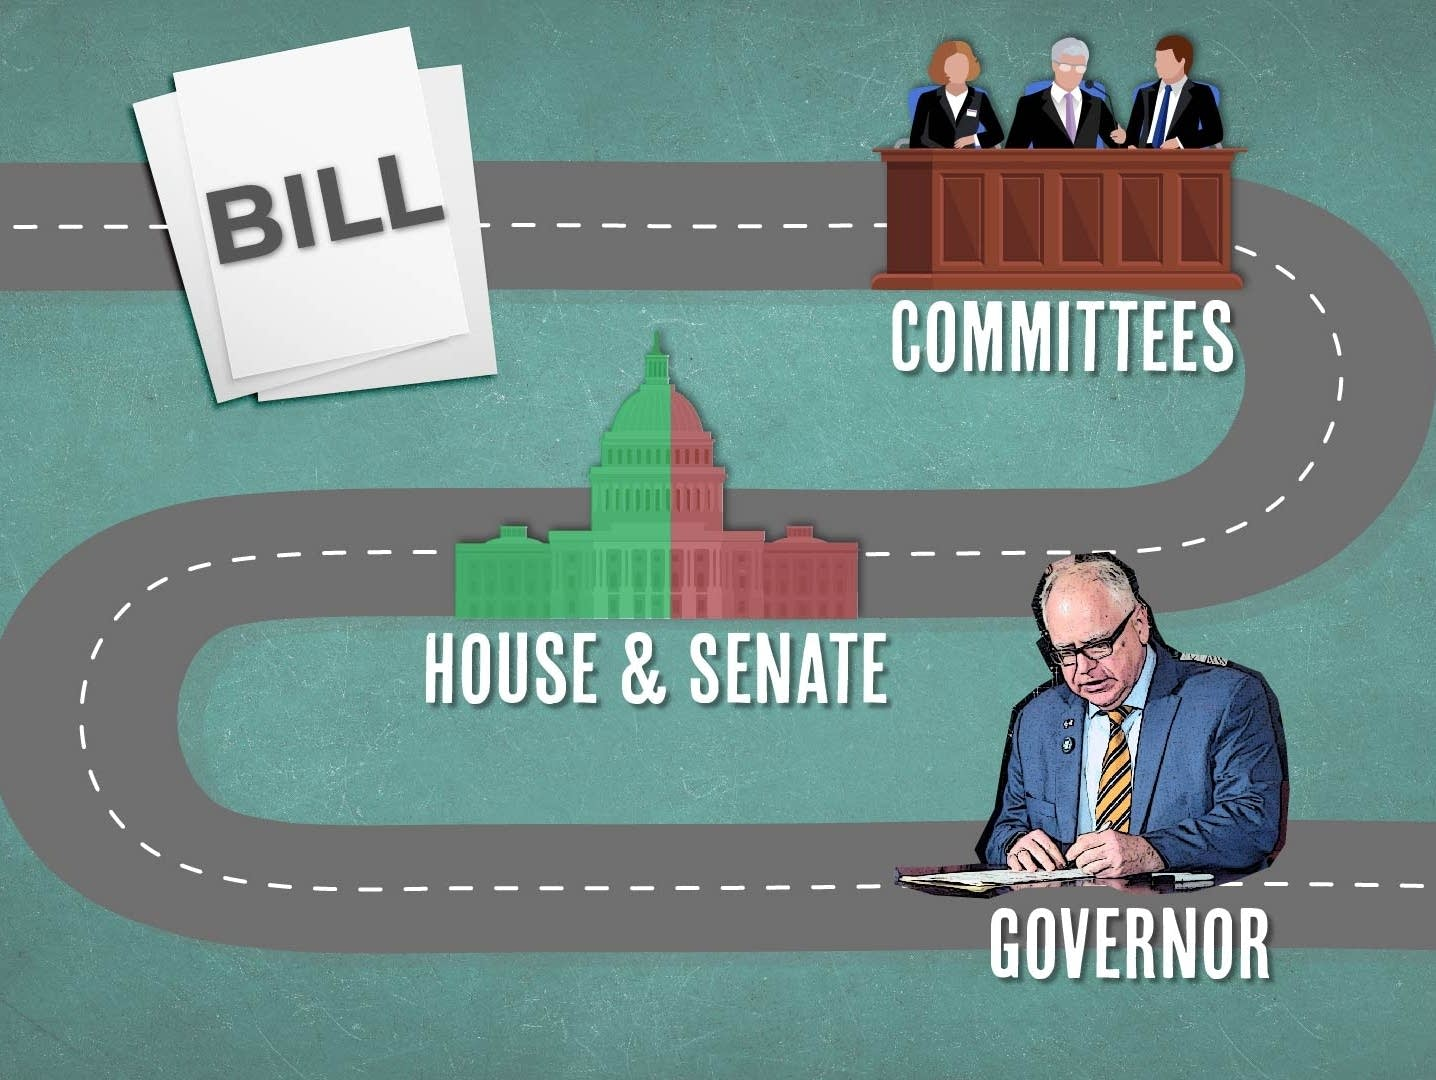 How does a bill become a law in Minnesota?